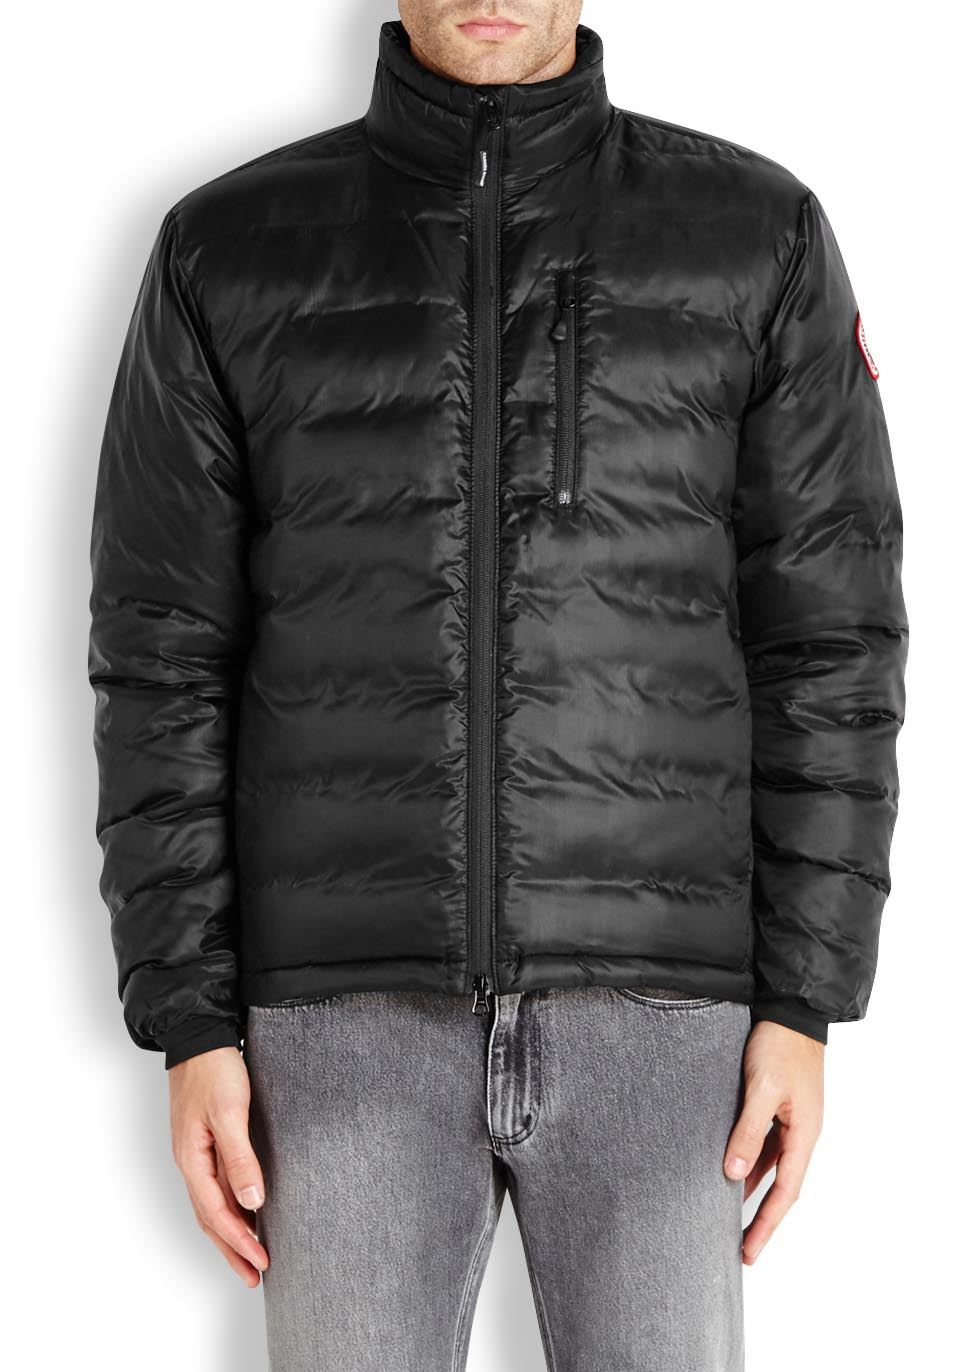 Lodge quilted shell jacket - Canada Goose